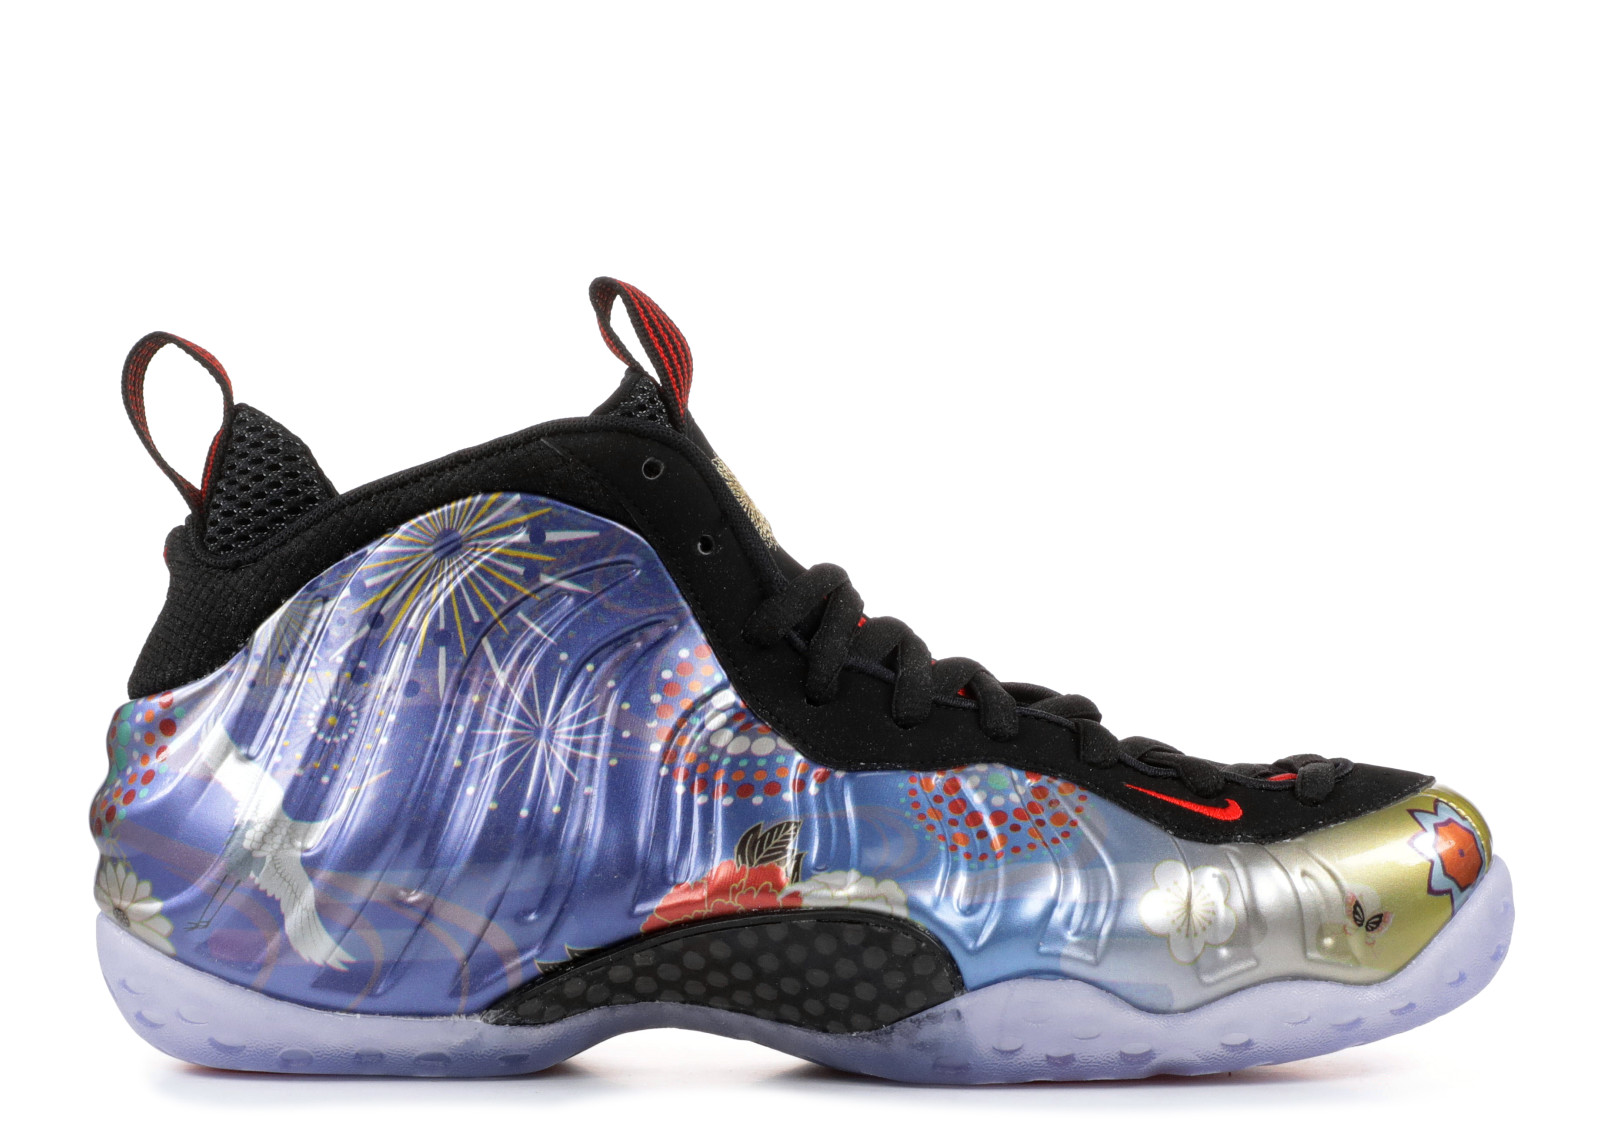 Air Foamposite One LNY QS Lunar New Year 2018